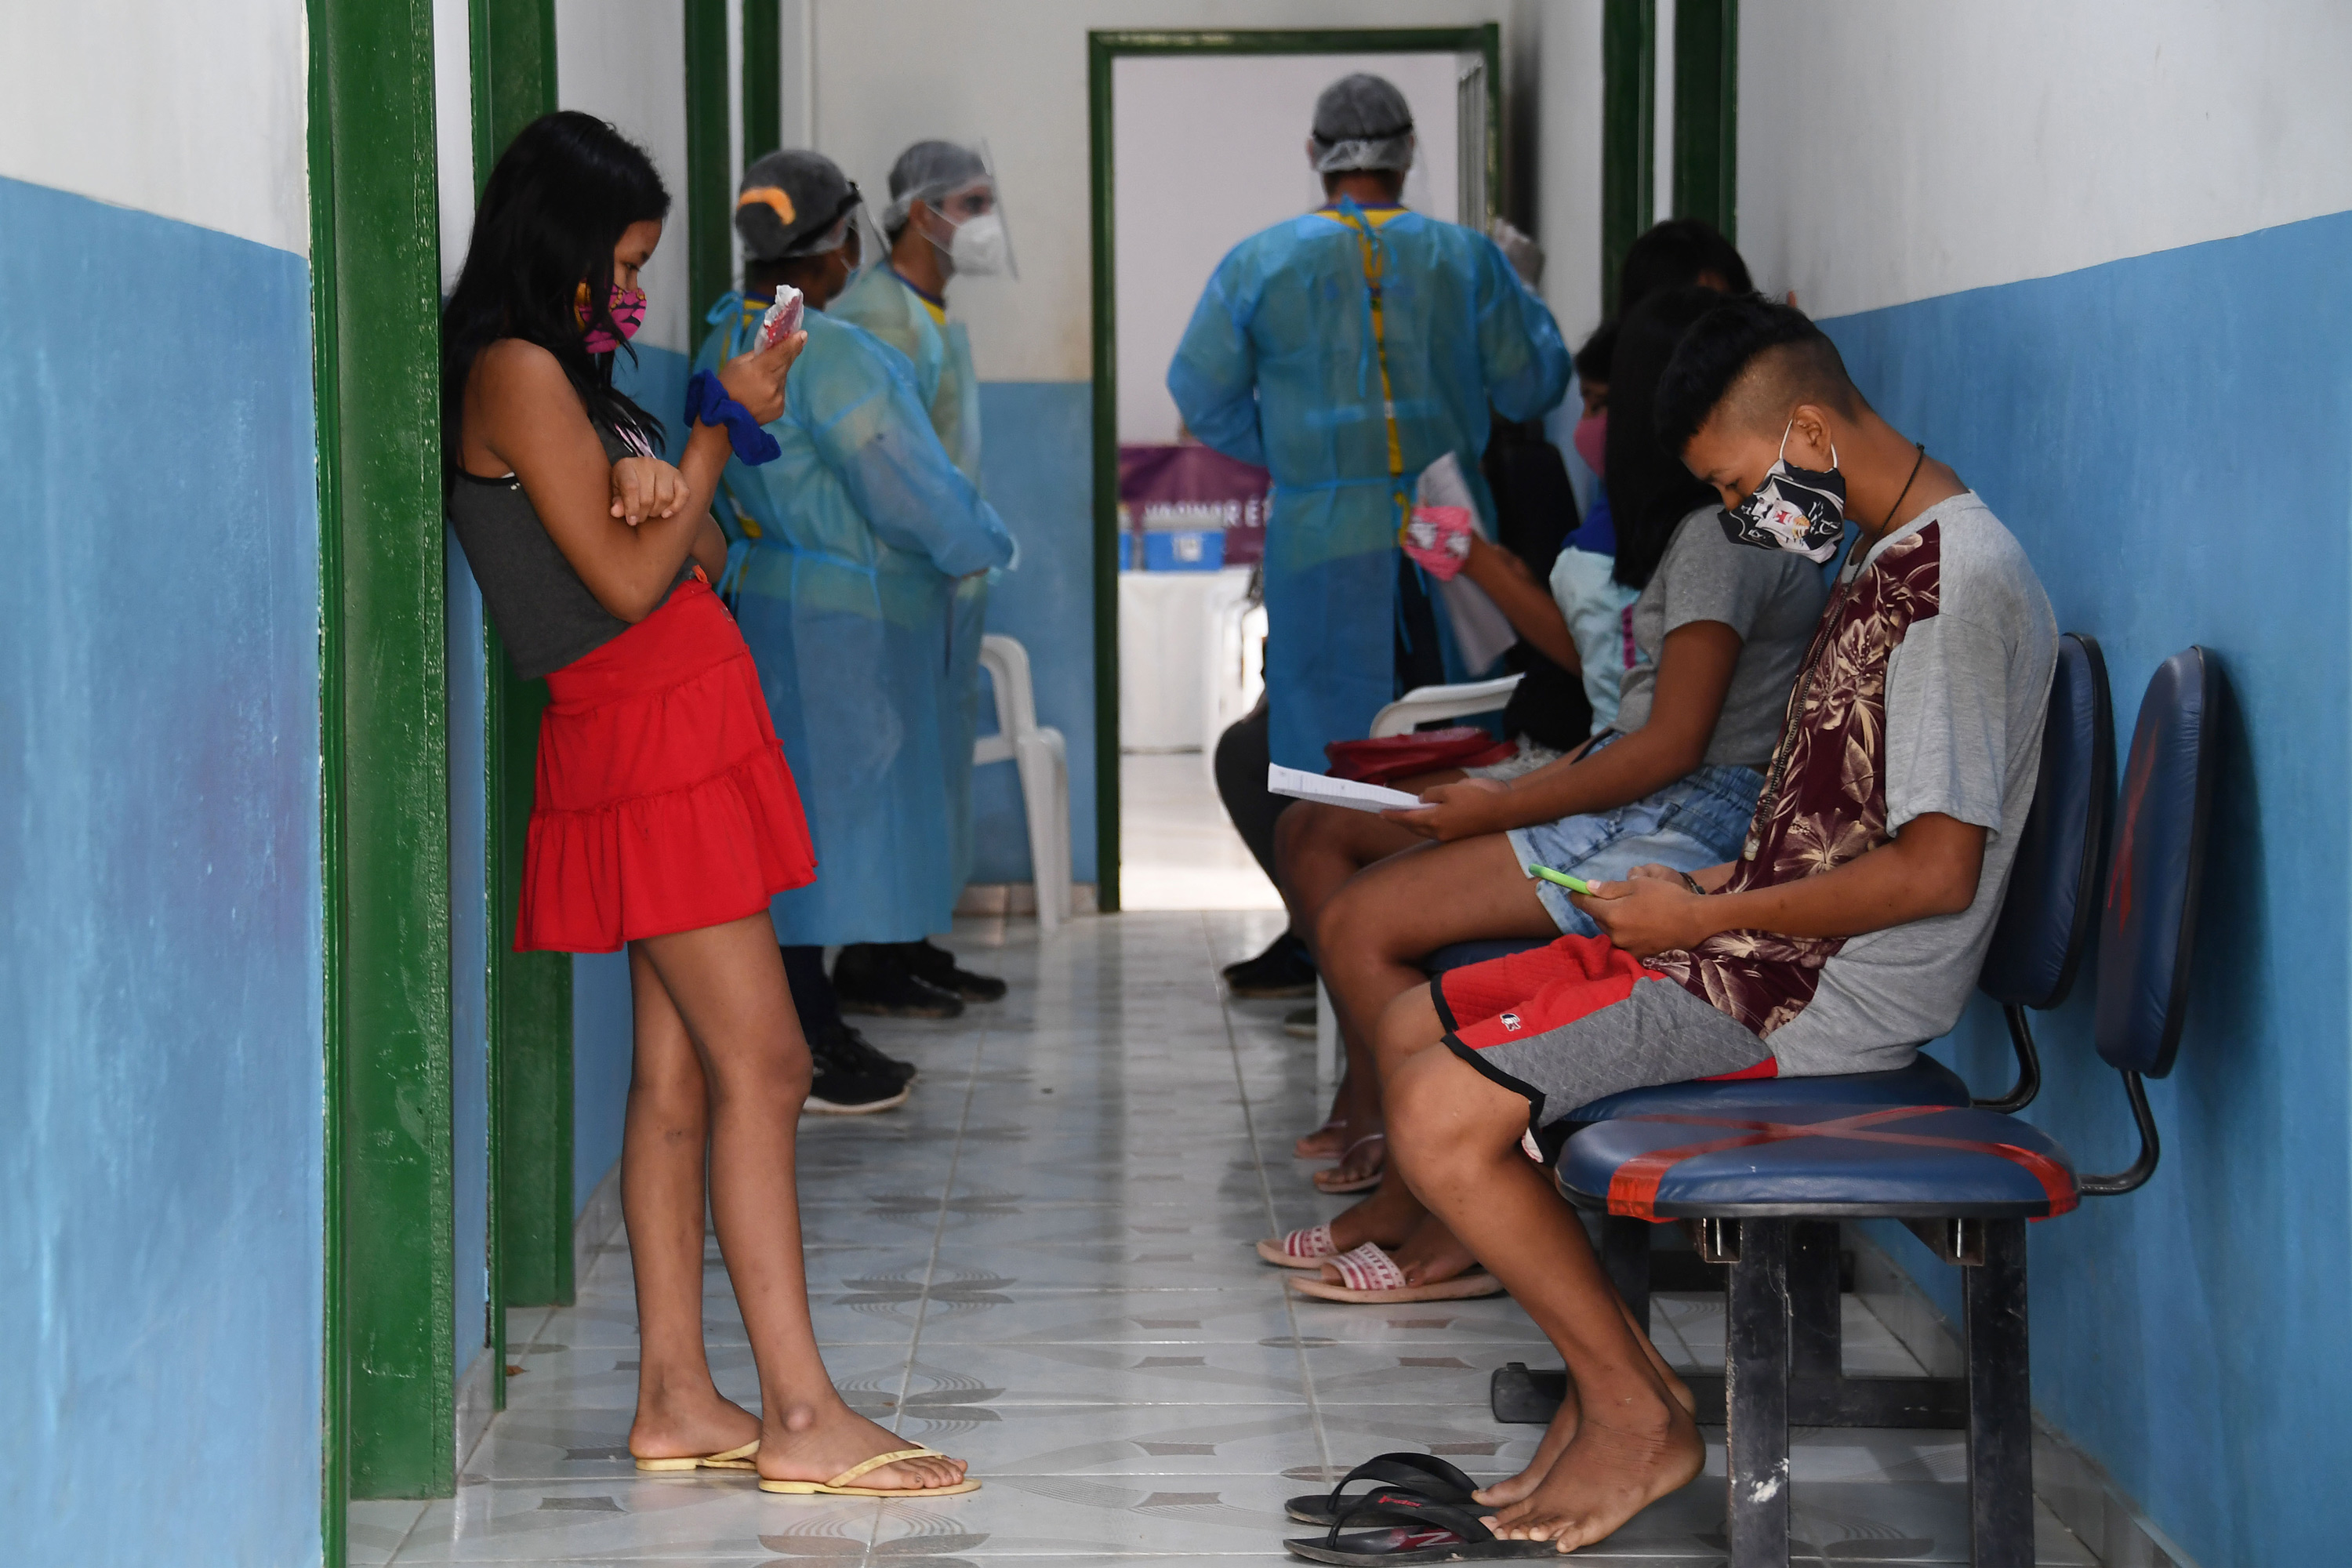 Brazilian indigenous people of the Marubo ethnic group wait to see doctors from the Brazilian Armed Forces' medical team at a health post in Amazonas state.